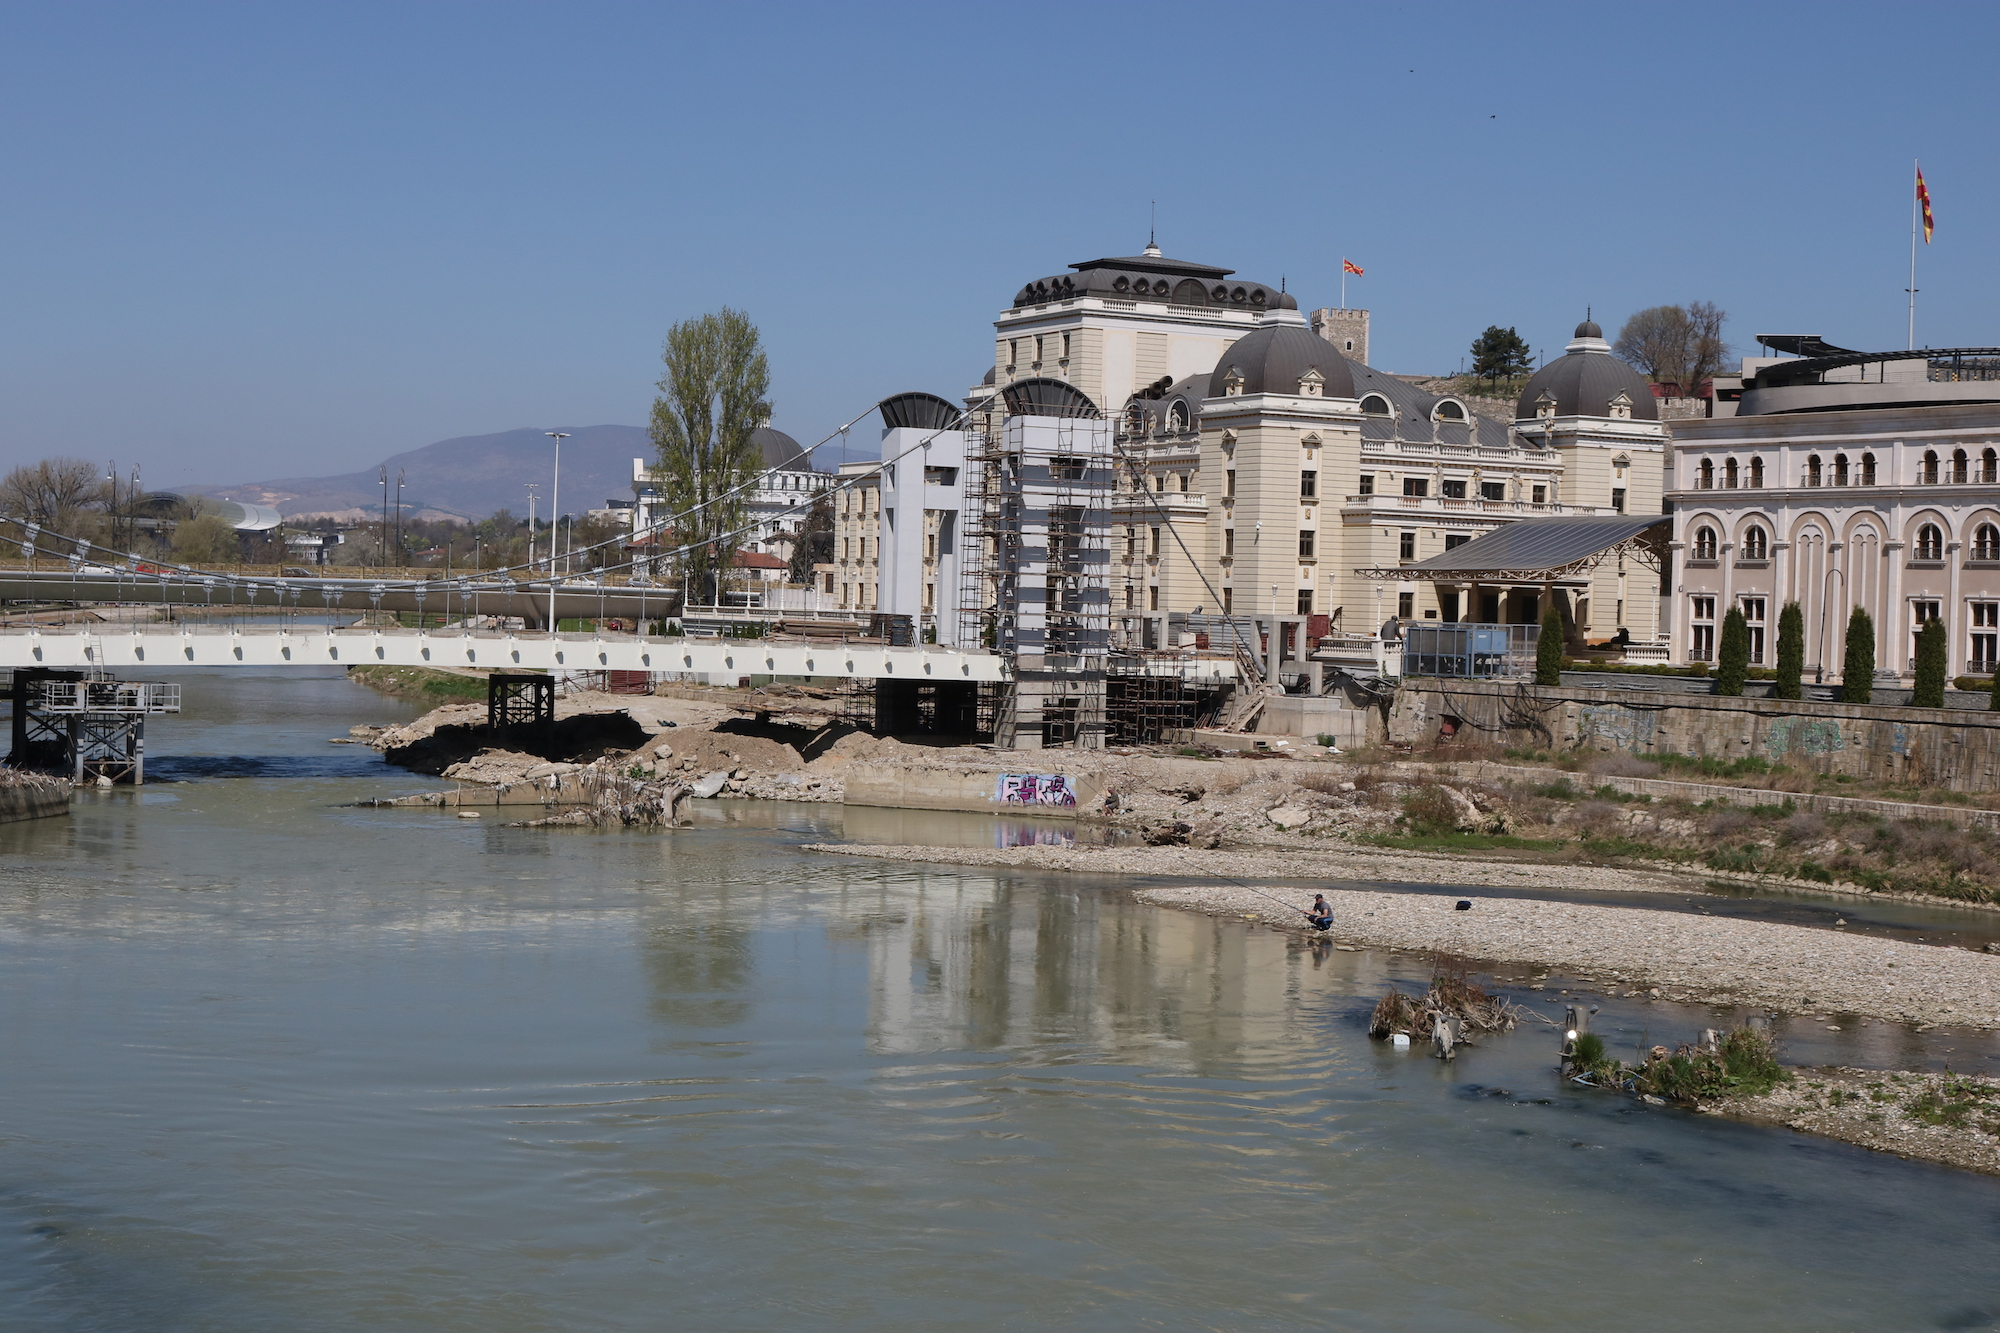 Much of the Skopje 2014 project remains unfinished. Image: Liza Premiyak